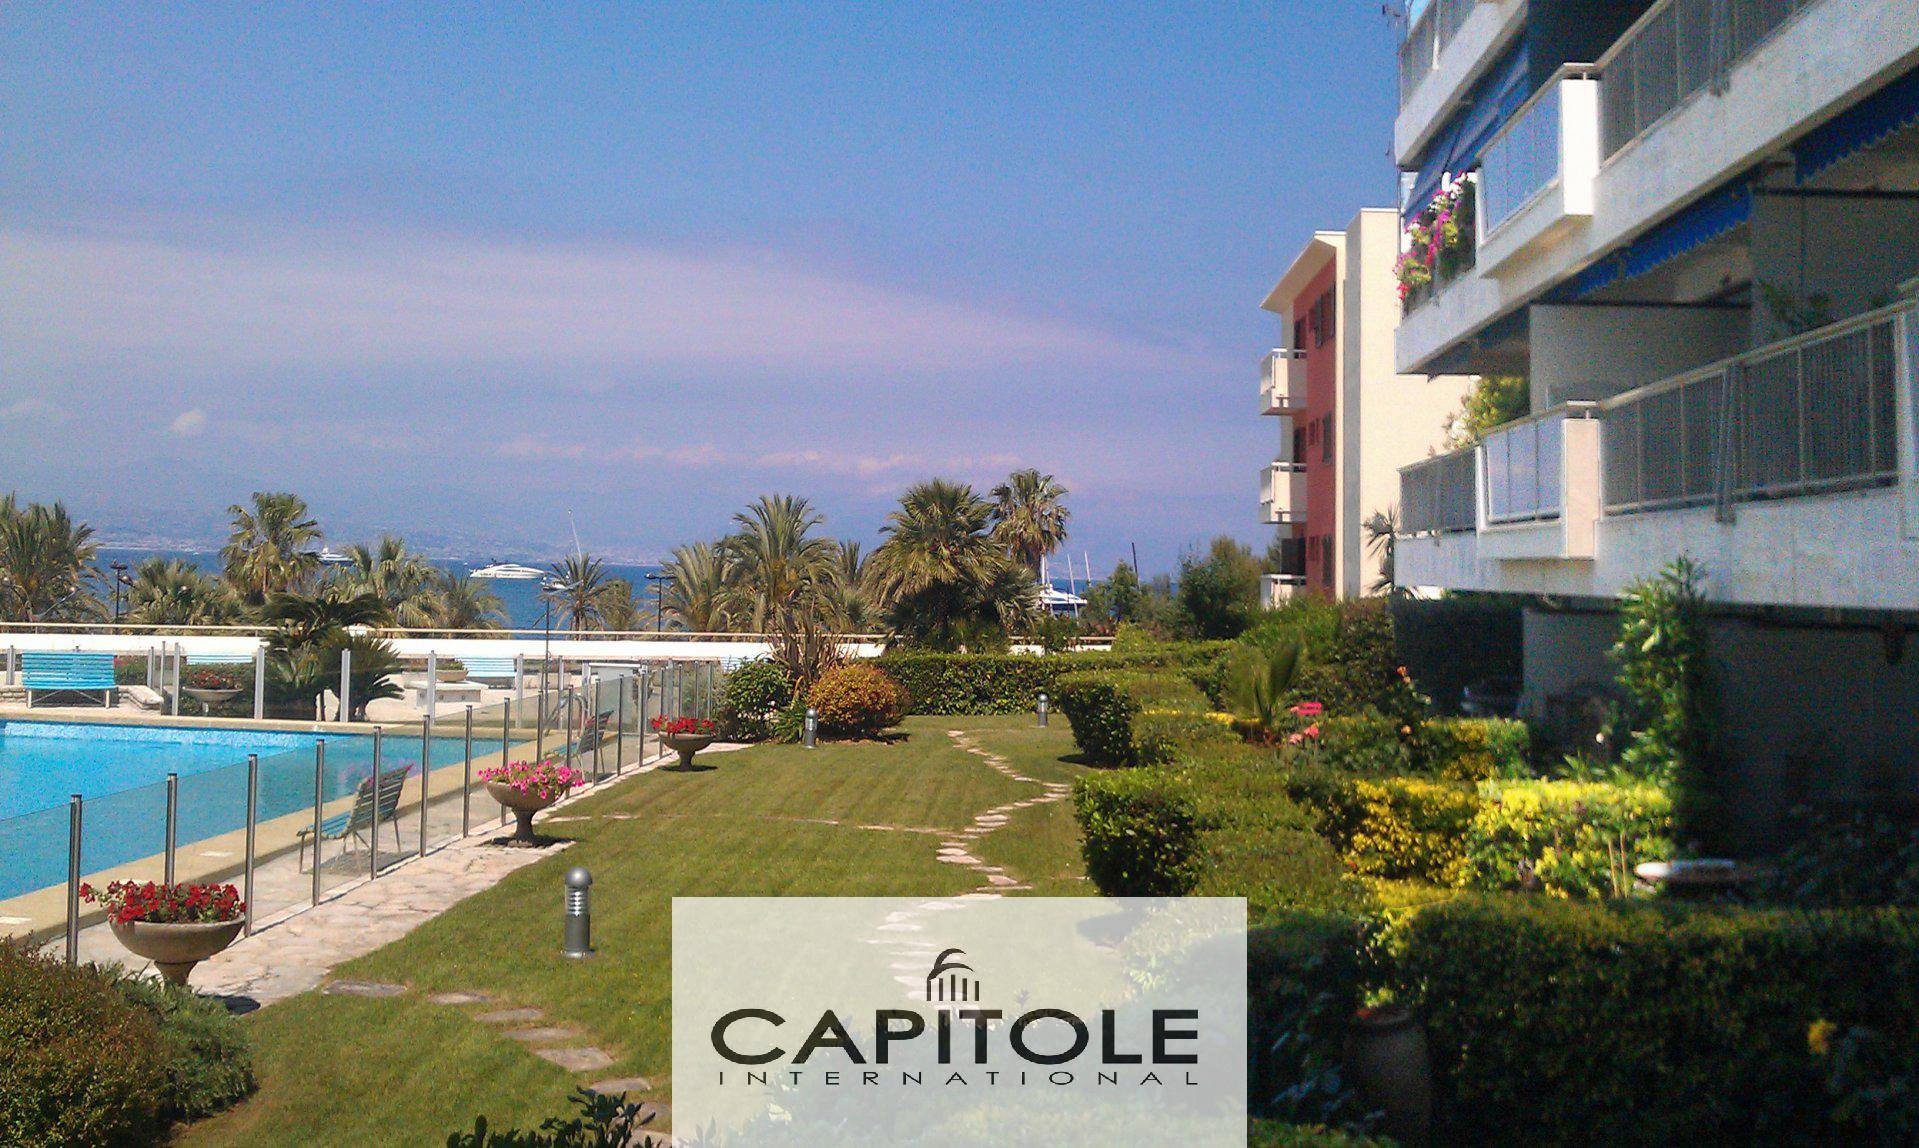 For sale, Antibes border line Cap d'Antibes, superb 2 bedroom apartment 81m², sea view,